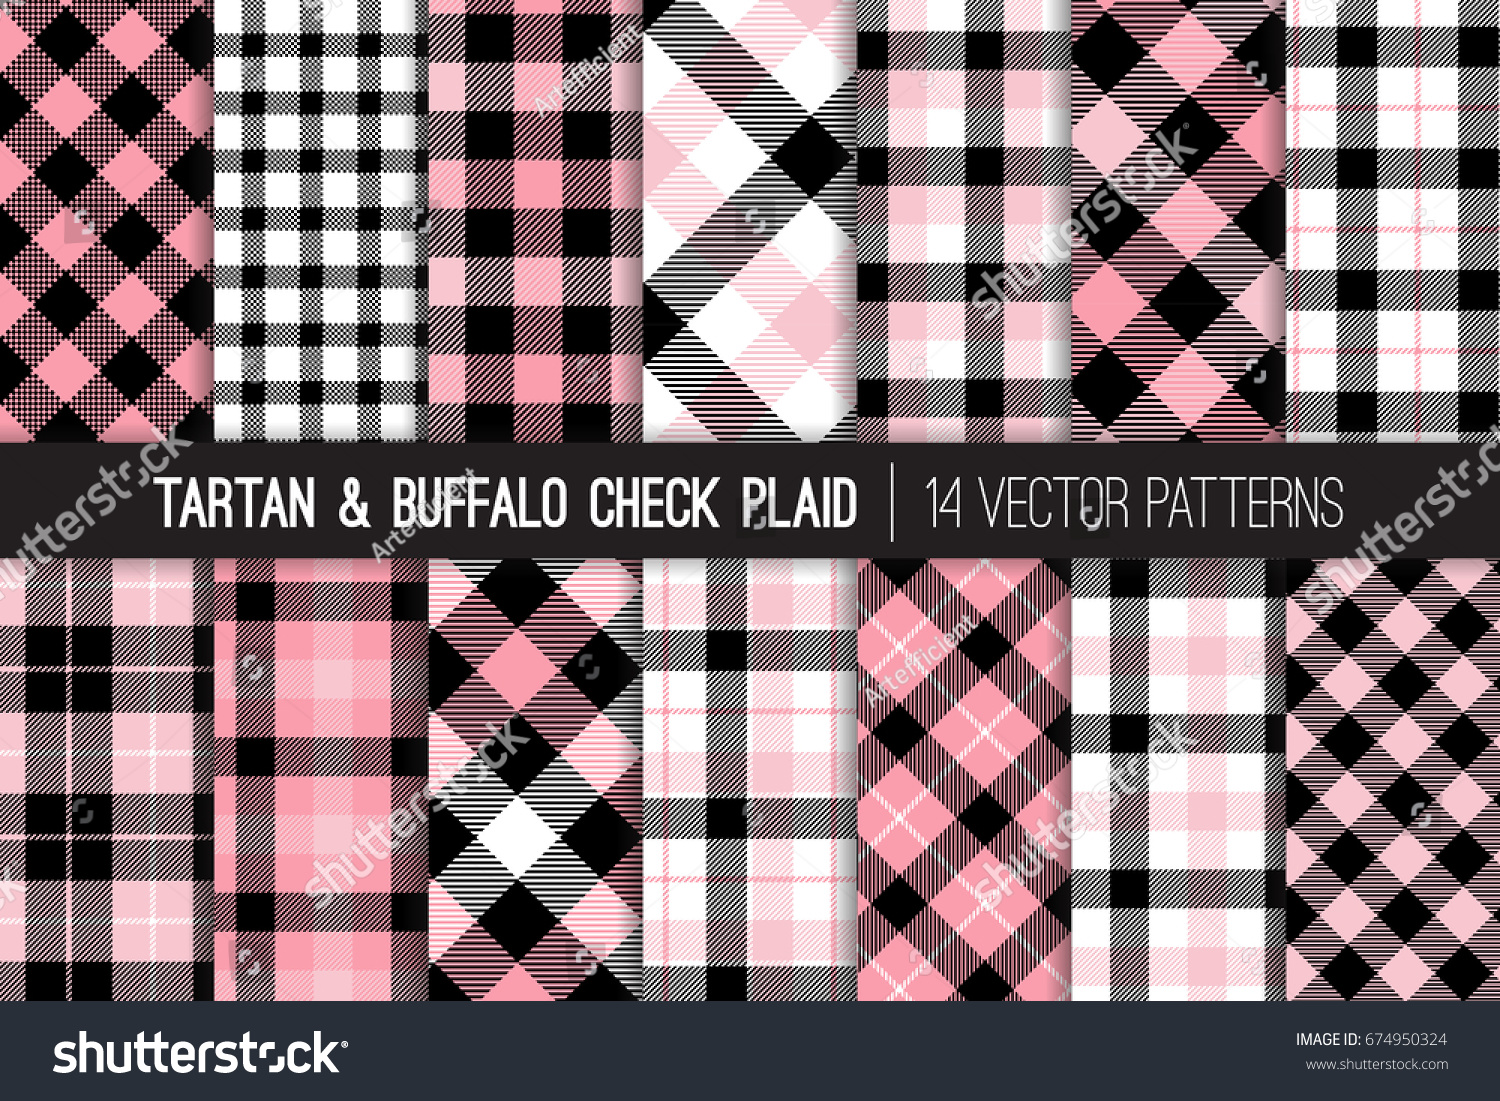 Pink black and white tartan and buffalo check plaid vector patterns preppy school uniform